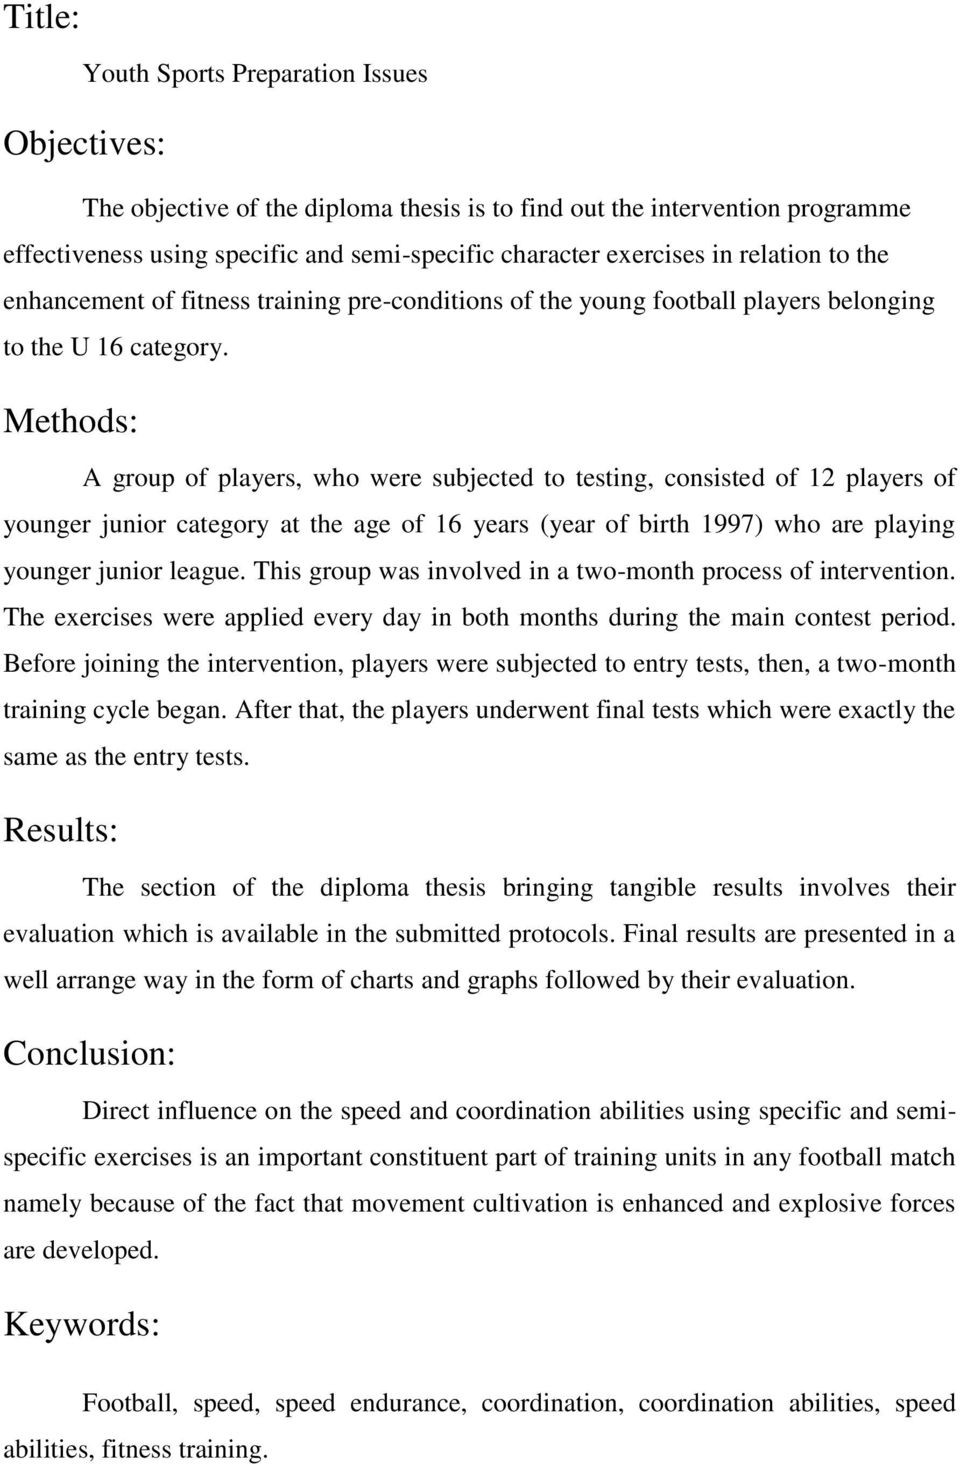 Methods: A group of players, who were subjected to testing, consisted of 12 players of younger junior category at the age of 16 years (year of birth 1997) who are playing younger junior league.